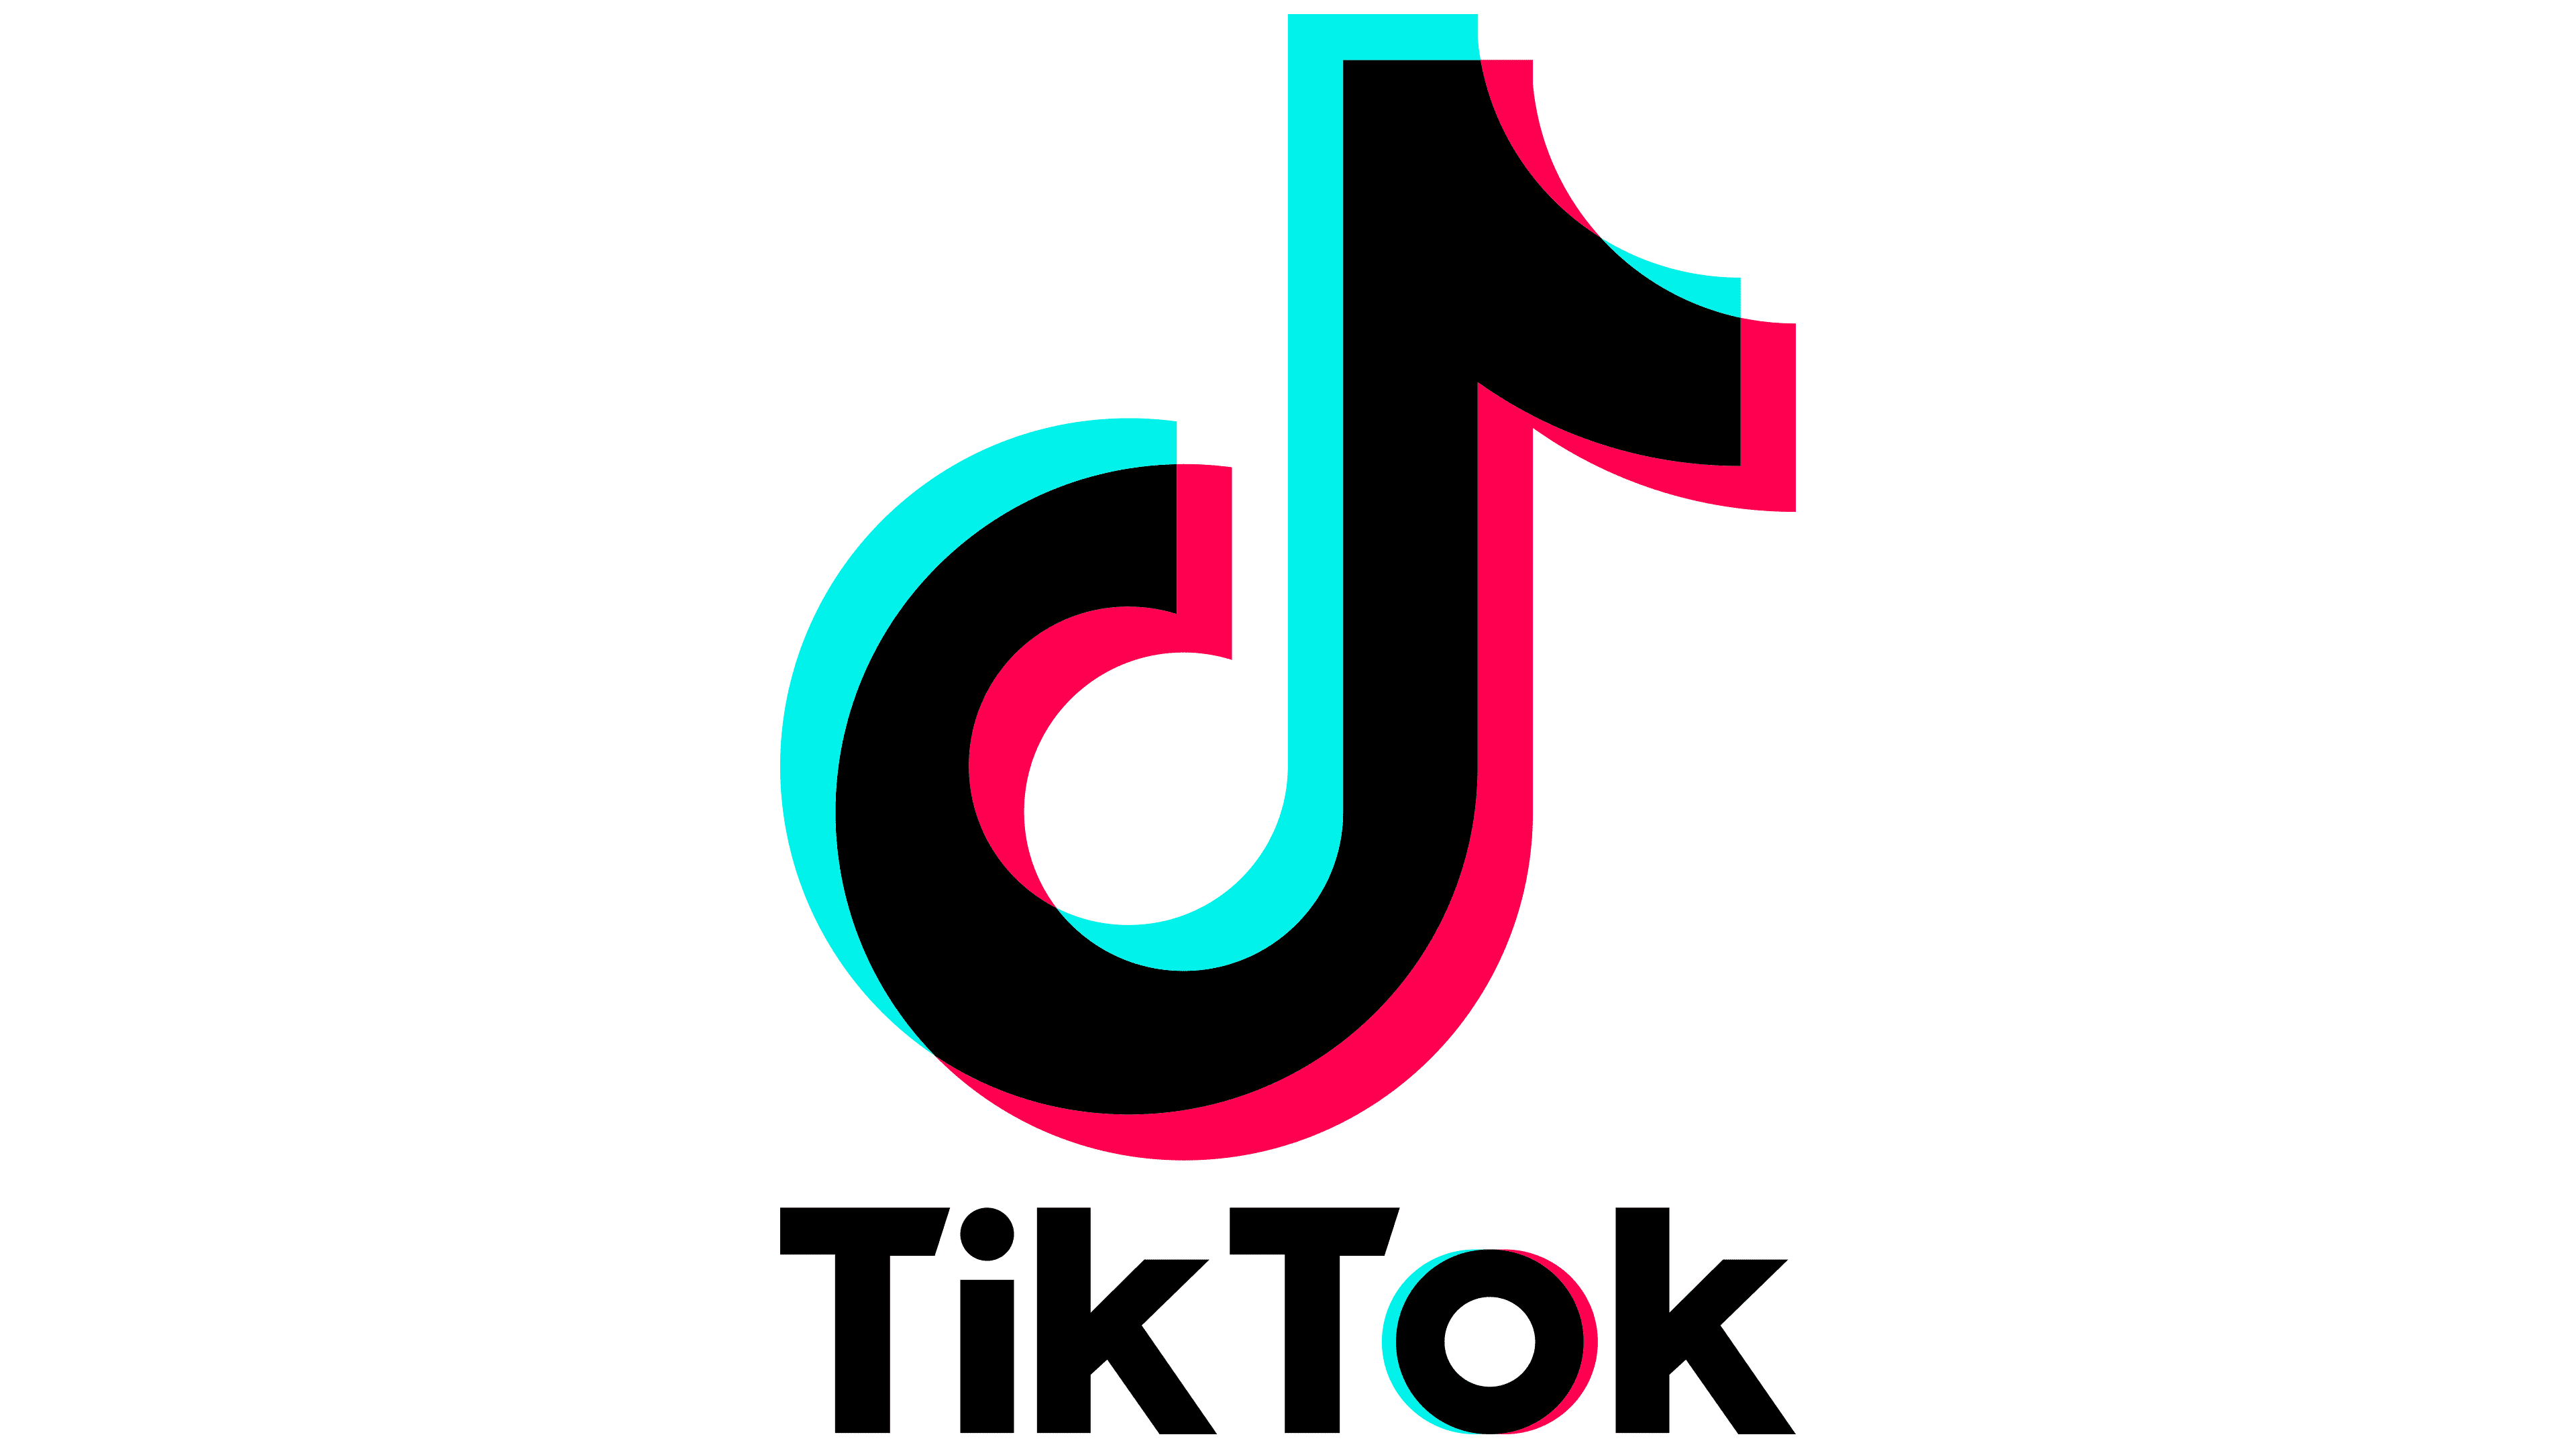 TikTok Logo | The most famous brands and company logos in the world